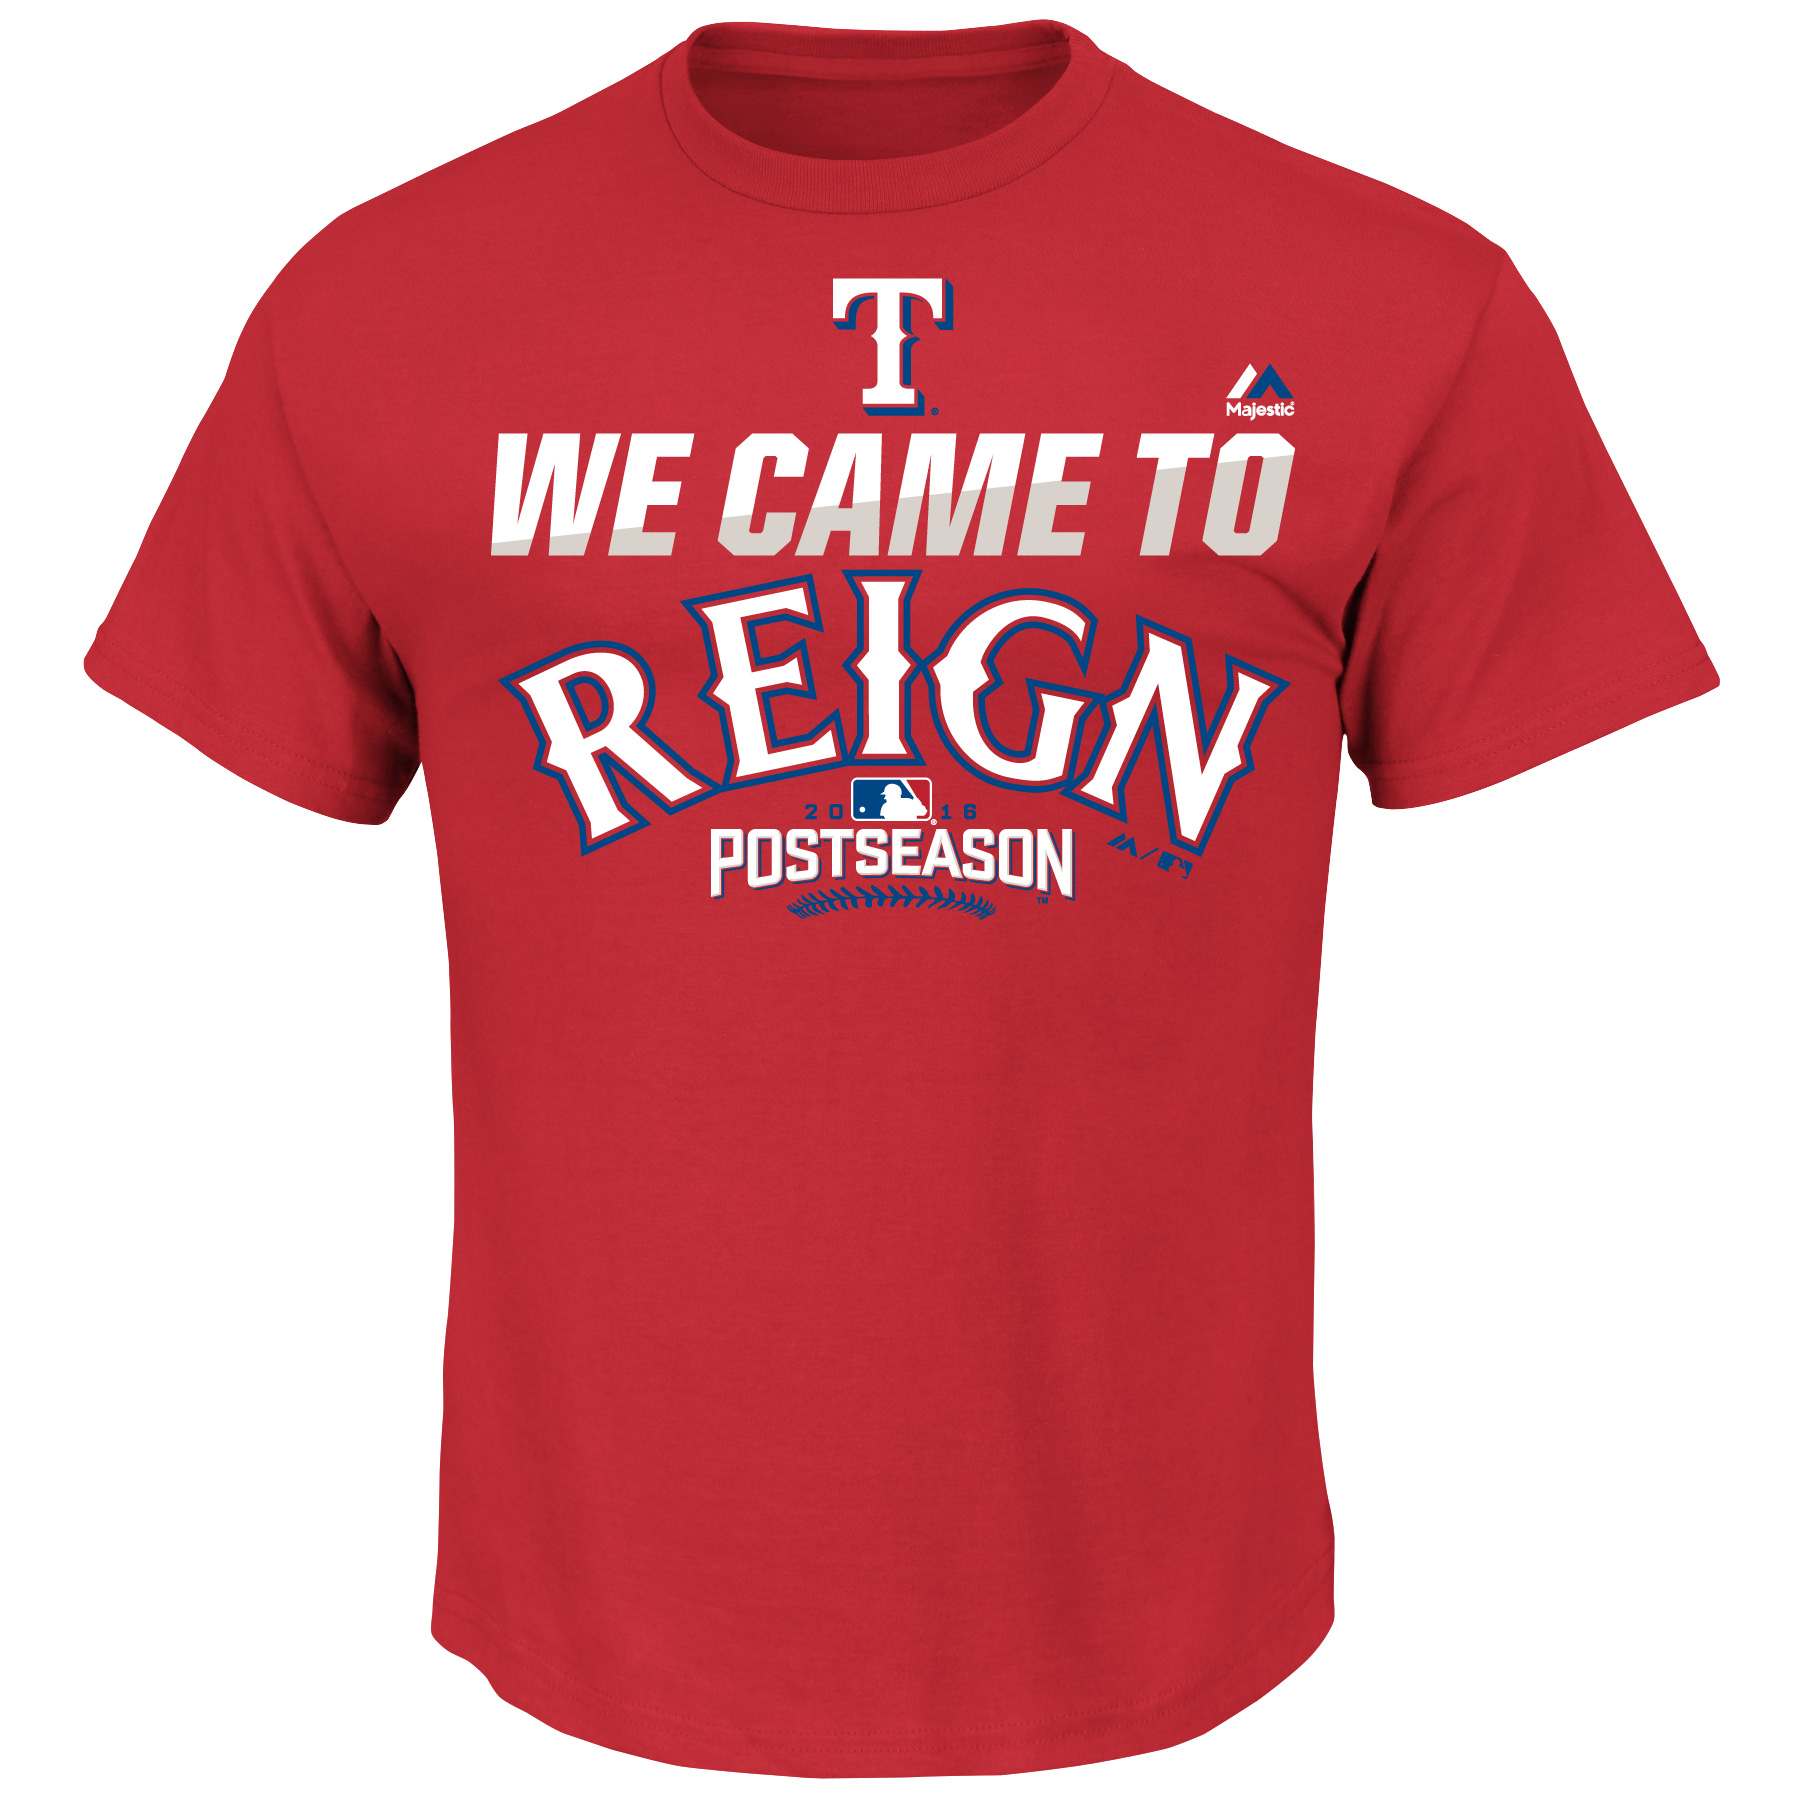 Texas Rangers Majestic 2016 Postseason Authentic Collection Came To Reign Playoff T-Shirt - Red